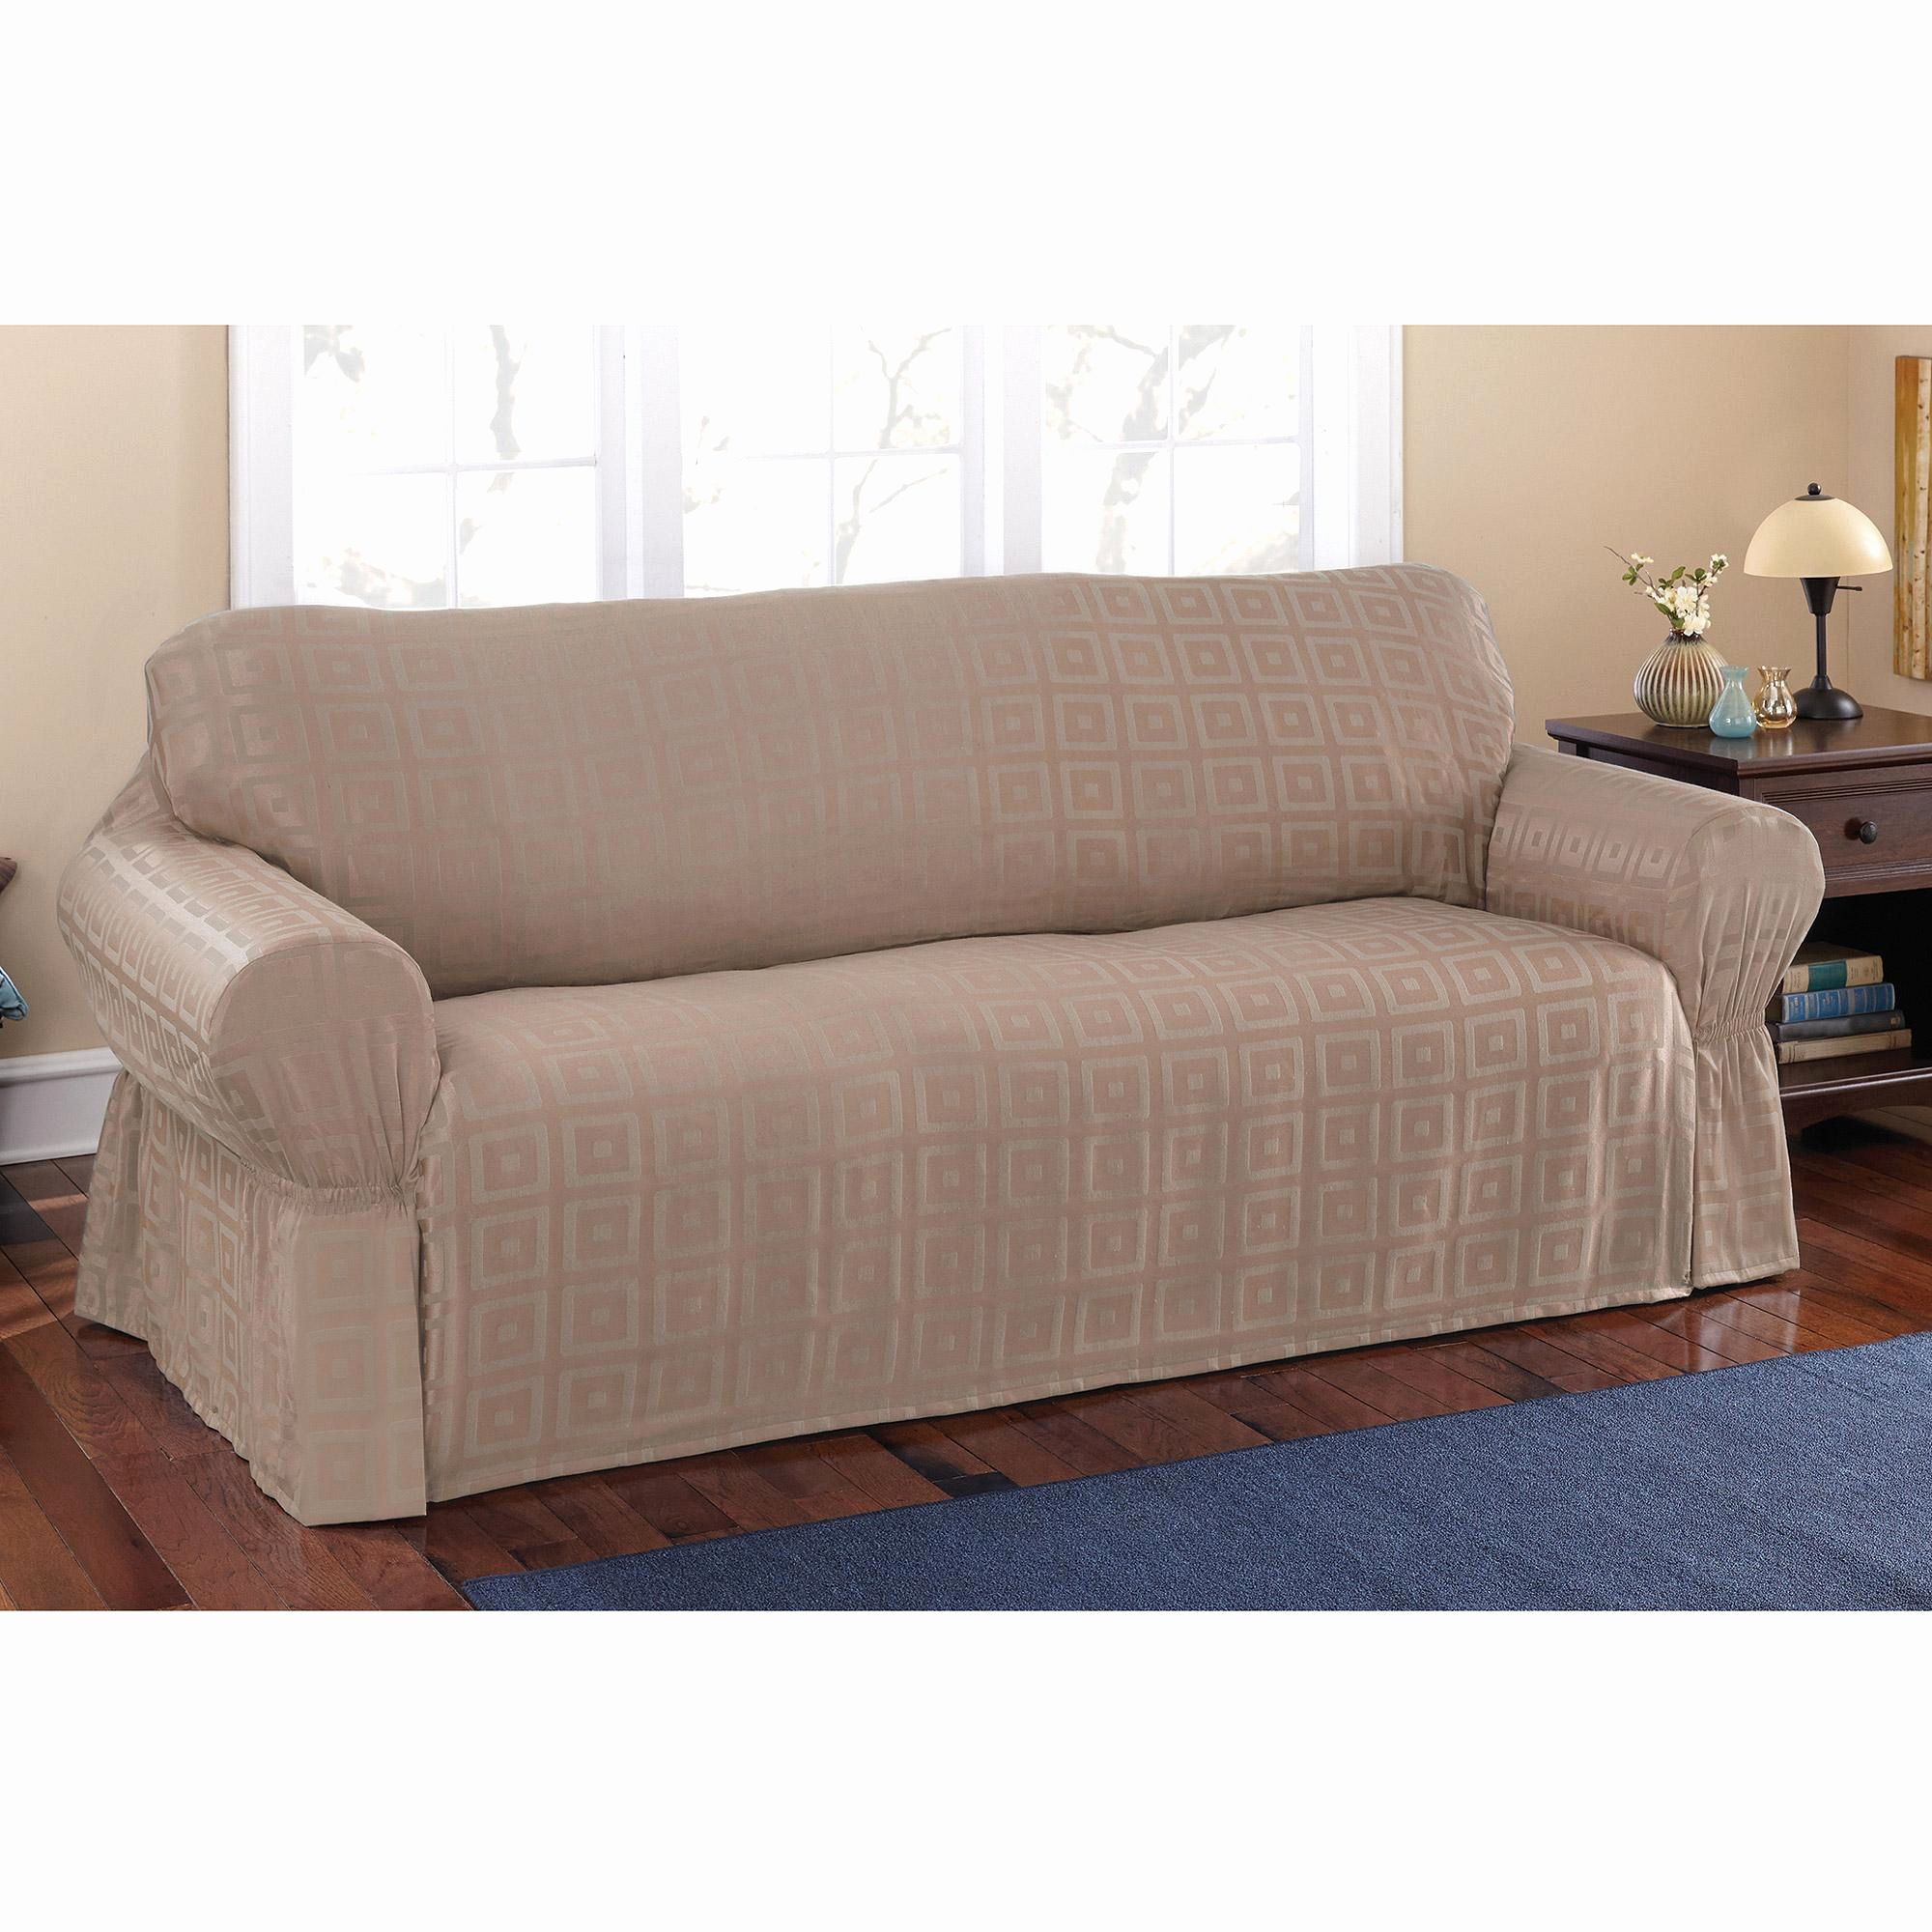 Fresh Sofa Cover Walmart Pics Furniture Walmart Couch For Your